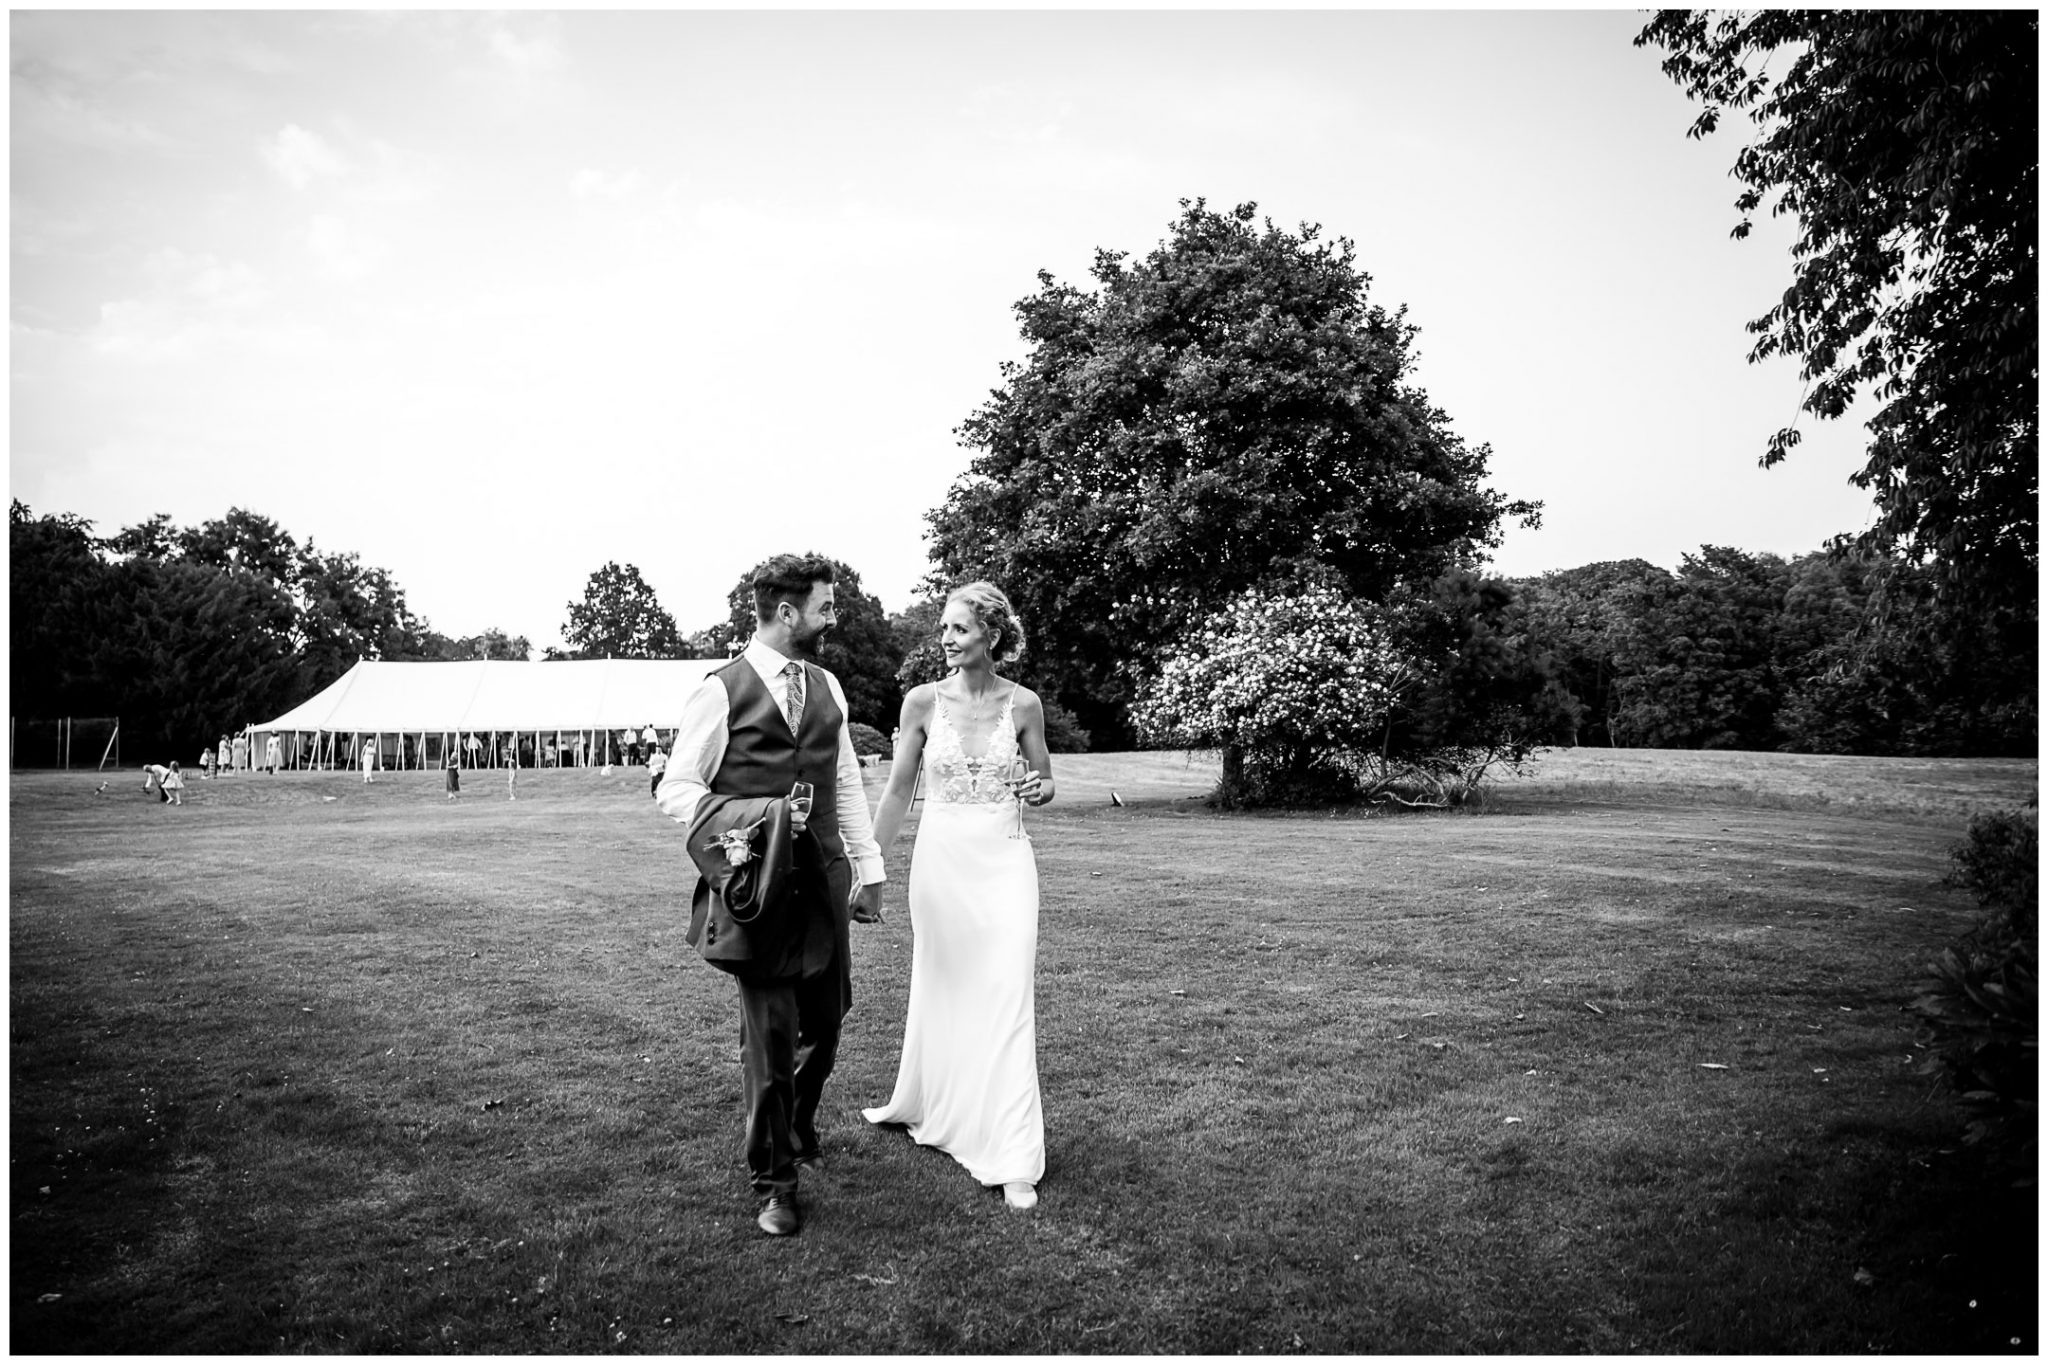 The couple walk away from the marquee towards the grounds and gardens of the house